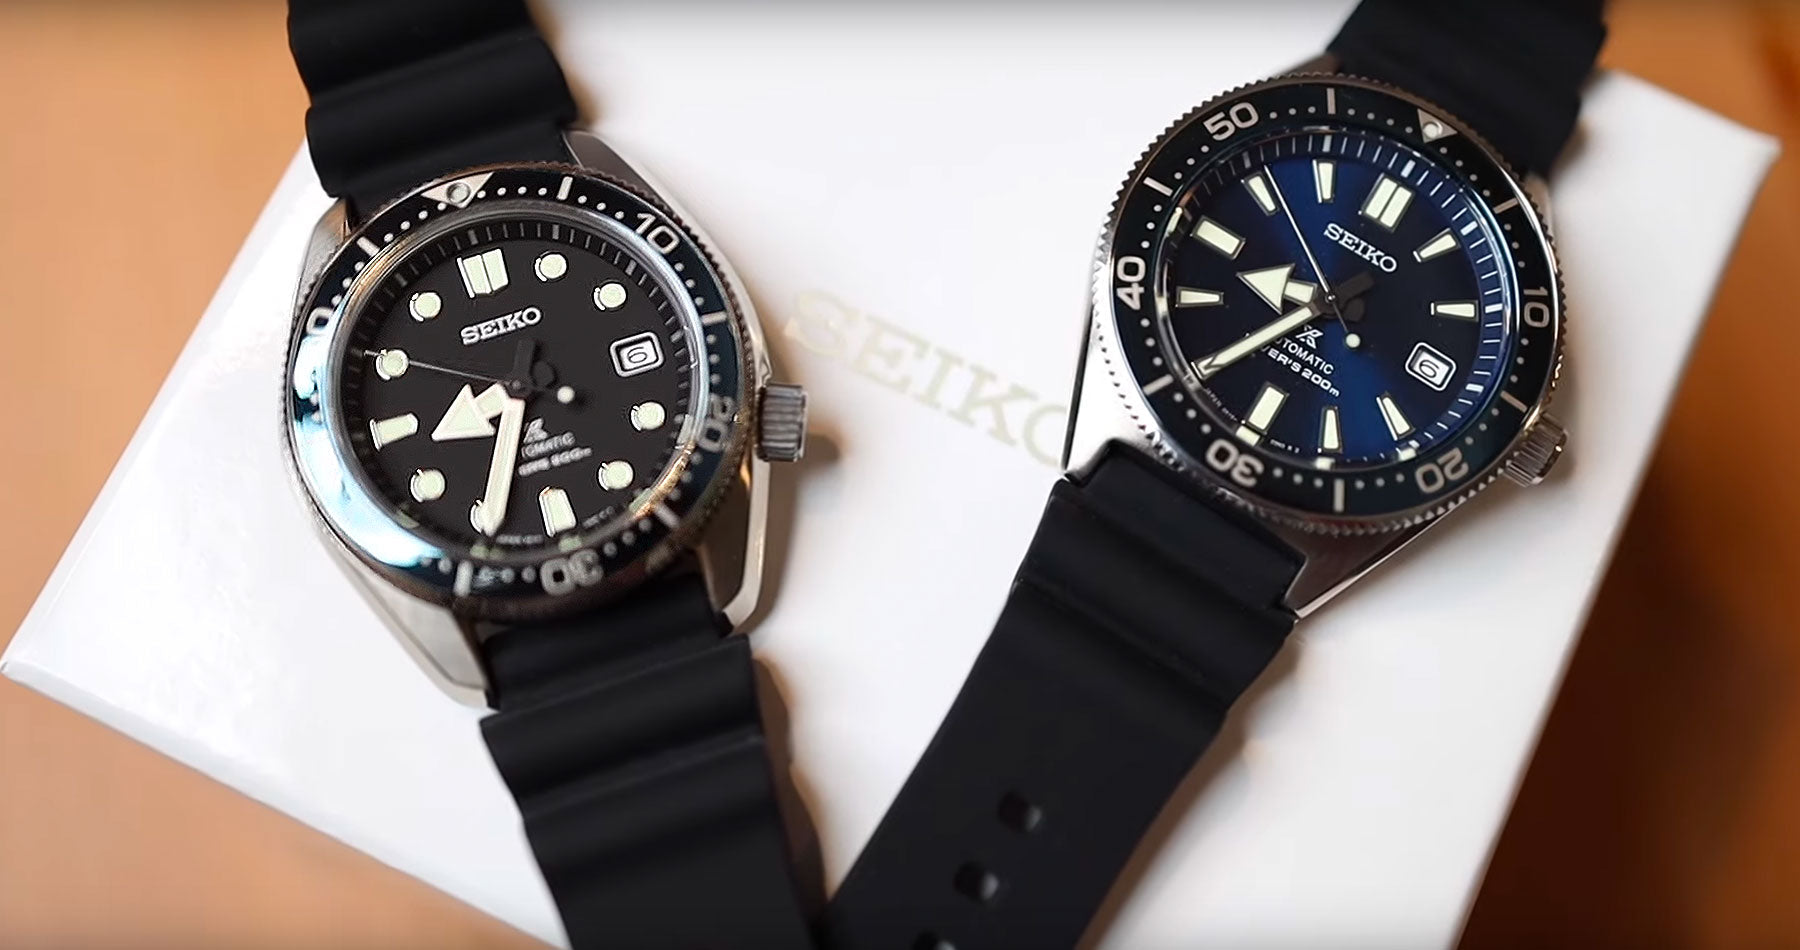 Unboxing Seiko Prospex Baby MM200 Ref. SBDC063 and 62MAS Ref. SBDC053 with Leo (Mandarin Ver.)